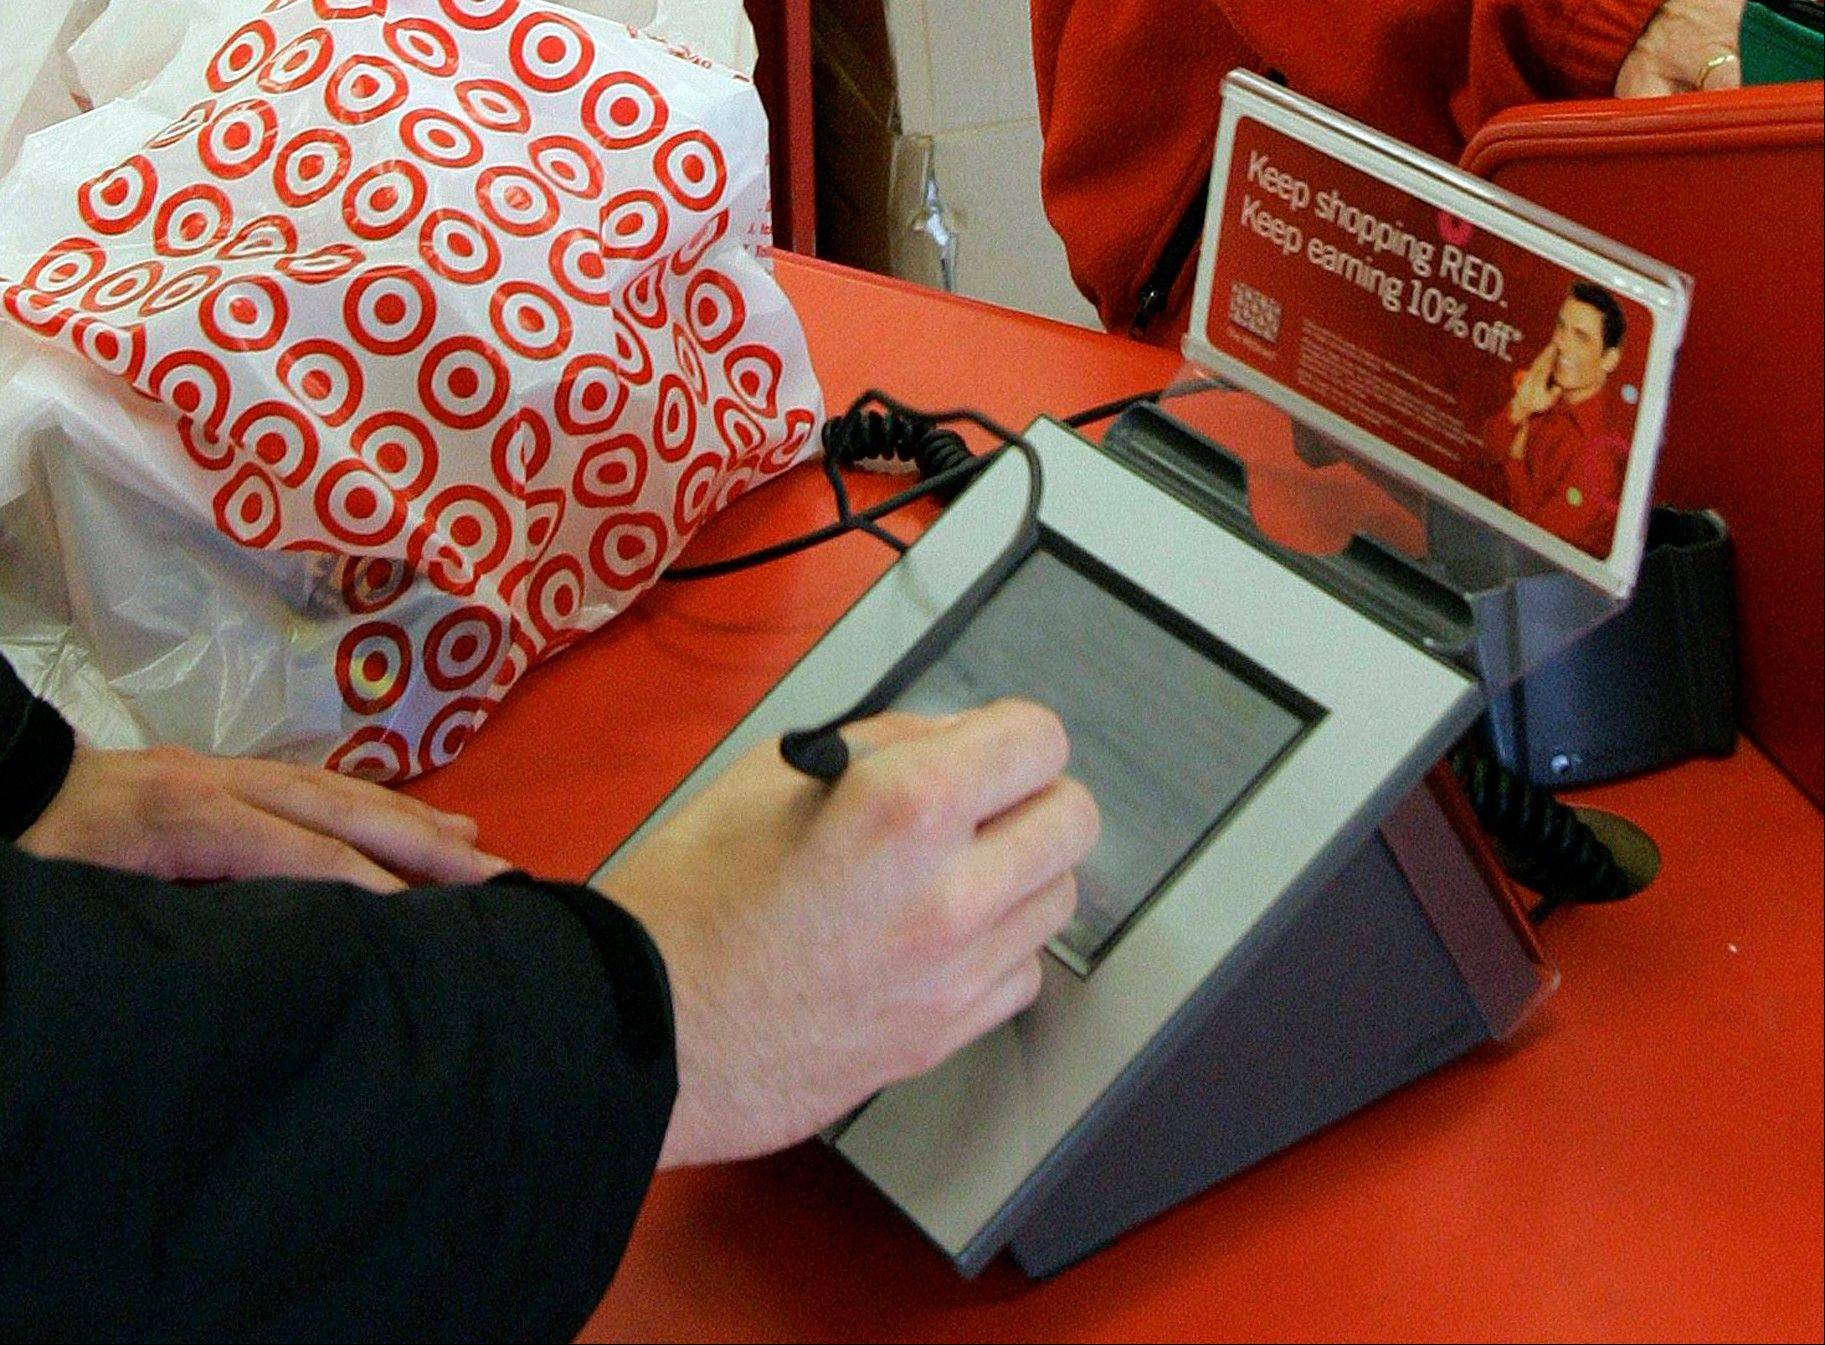 Target says that about 40 million credit and debit card accounts customers may have been affected by a data breach that occurred at its U.S. stores between Nov. 27 and Dec. 15.